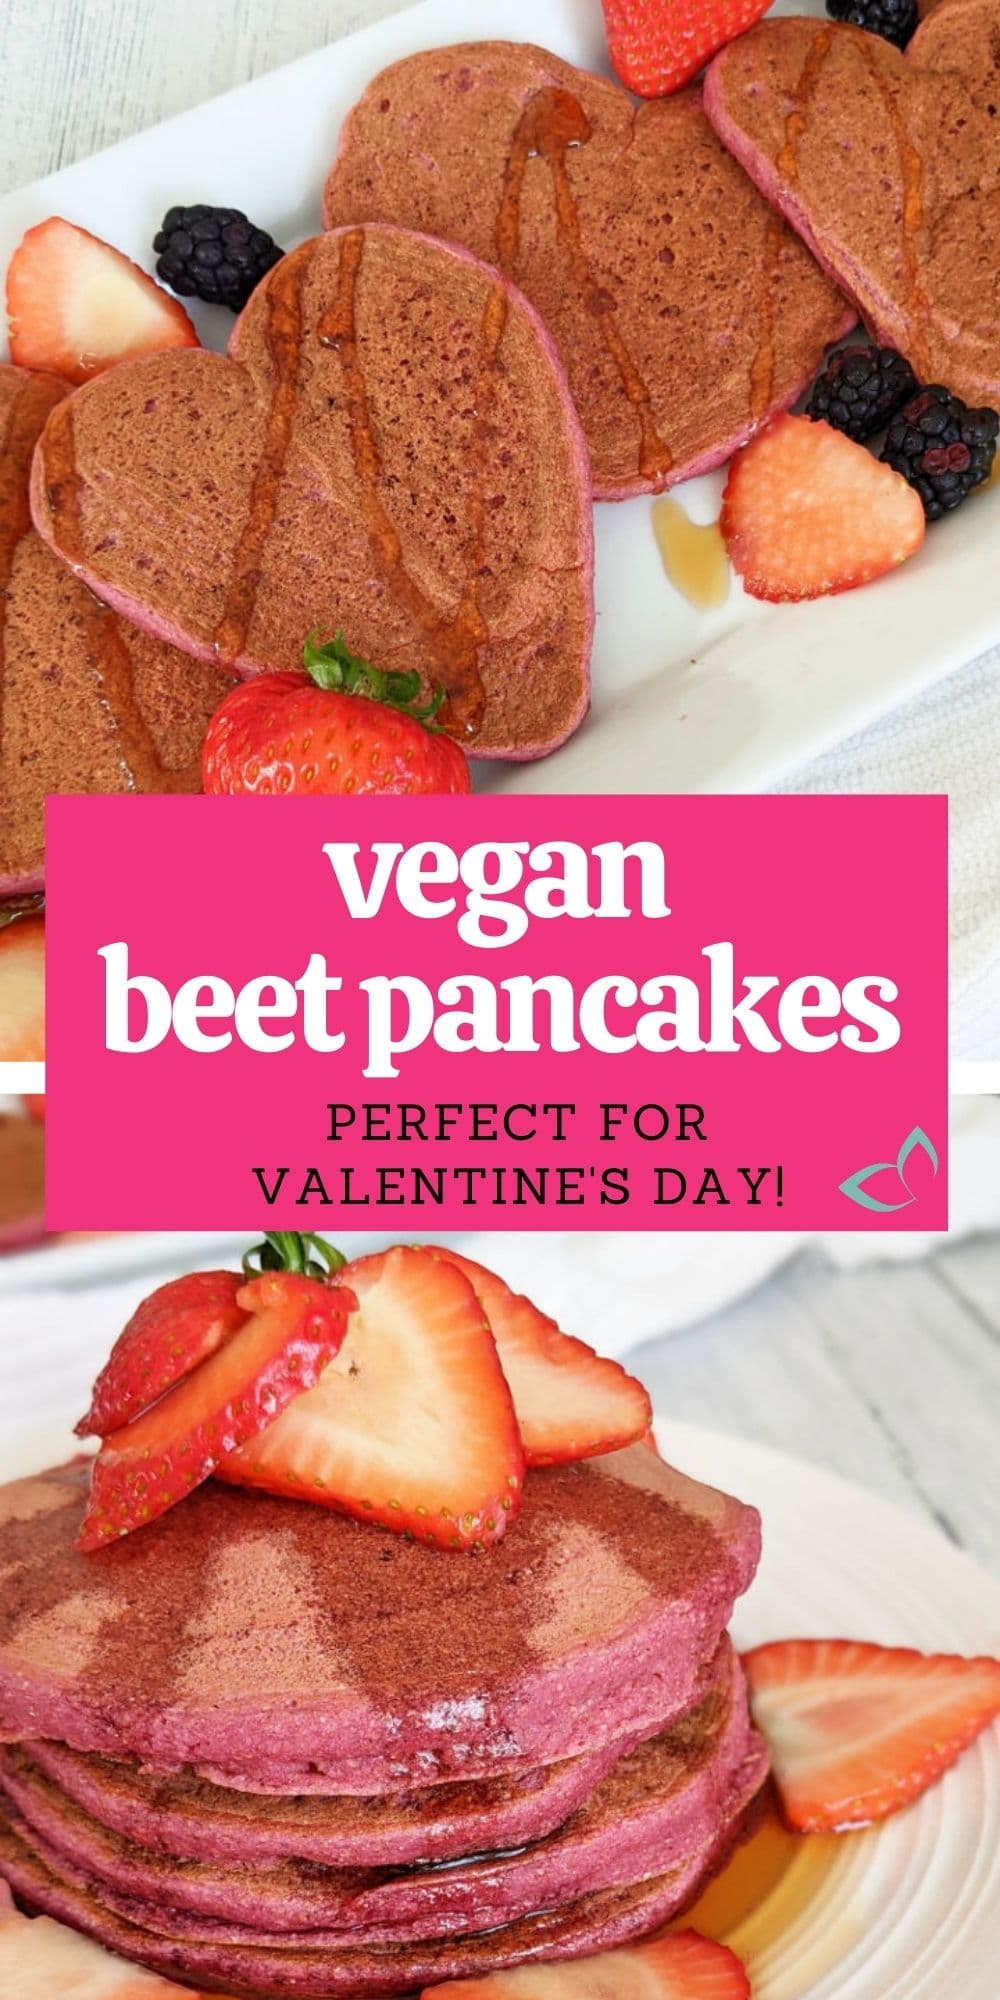 These beautiful beet pancakes are the perfect breakfast treat on Valentine's Day or any day you just want some fun color in your food. They're healthy, made with beets, whole wheat flour and are both oil free and dairy free but still incredibly scrumptious!